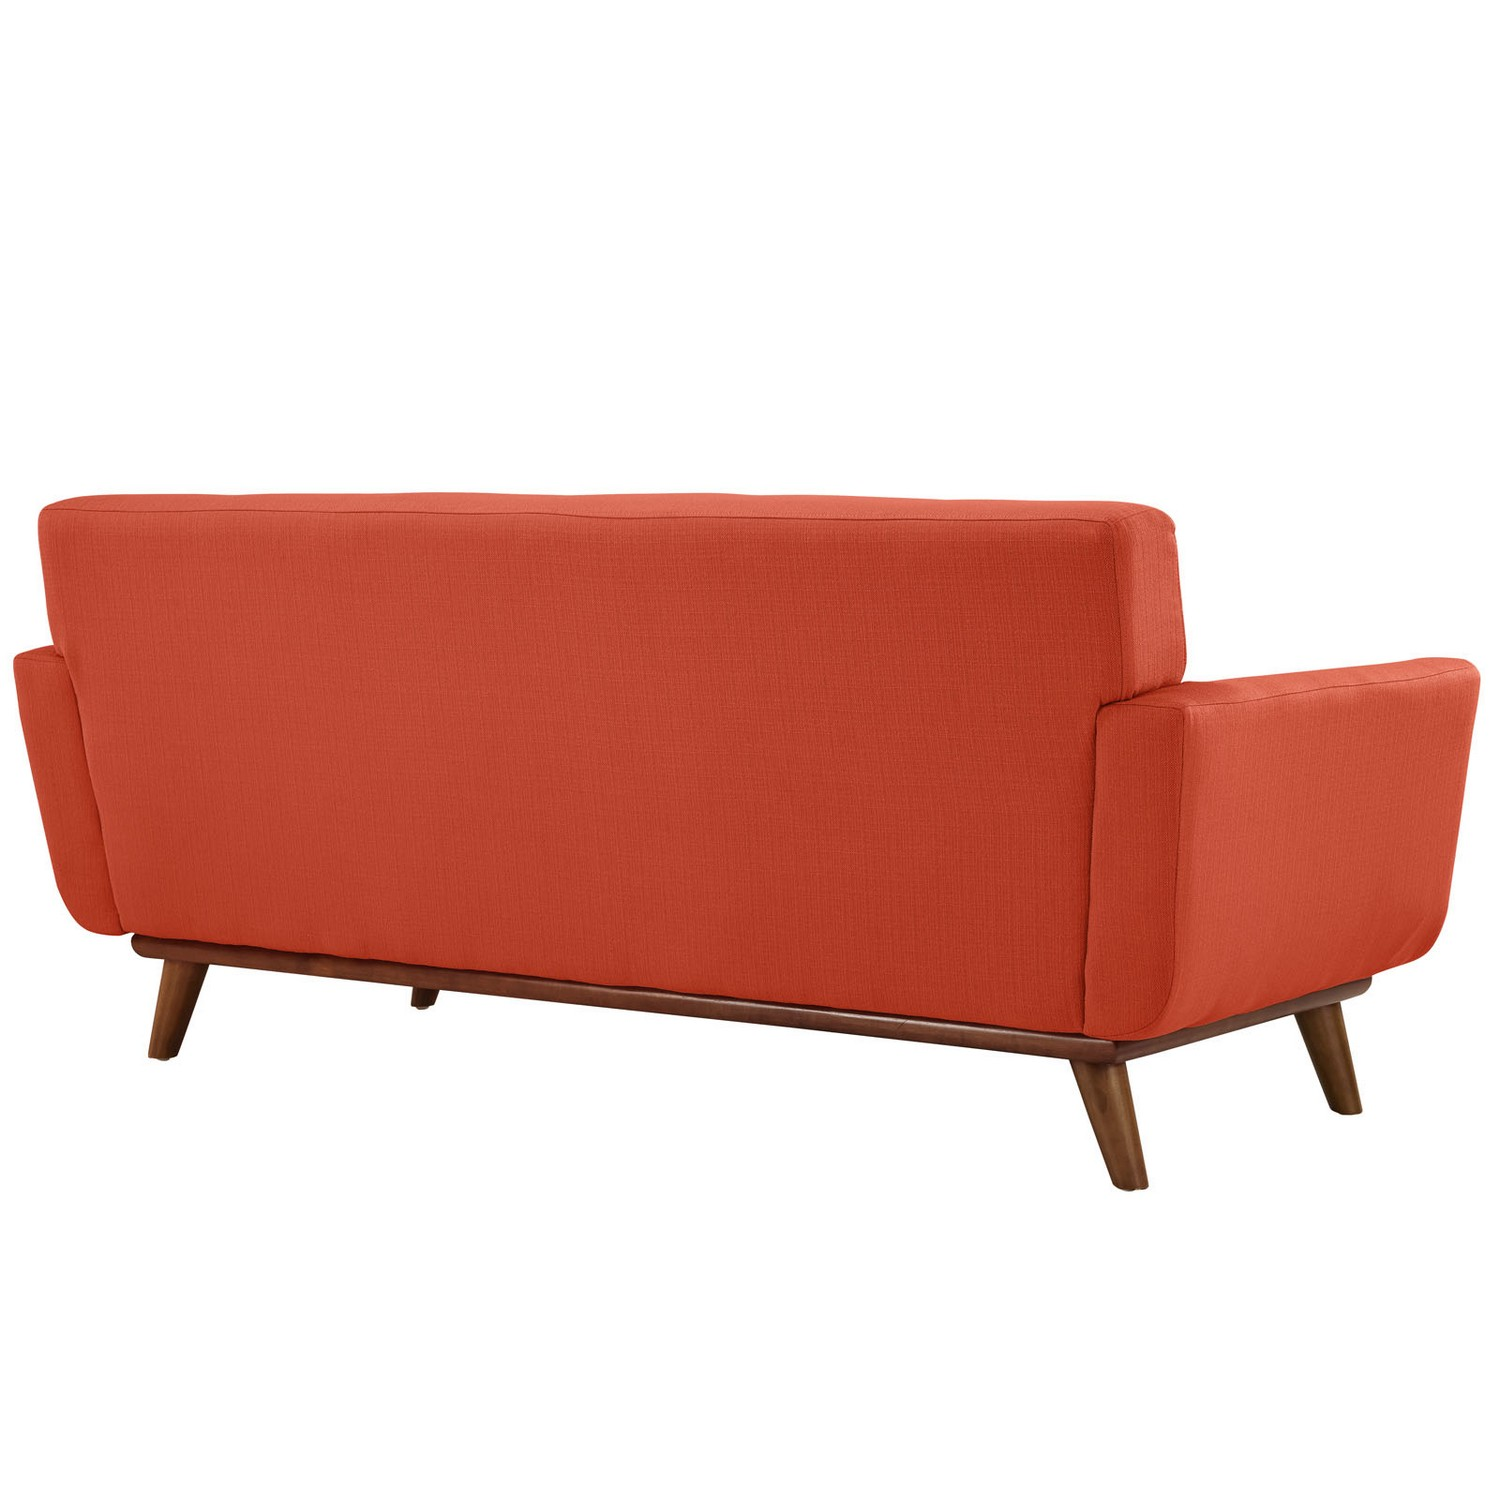 Modway Engage Loveseat and Sofa Set of 2 - Atomic Red